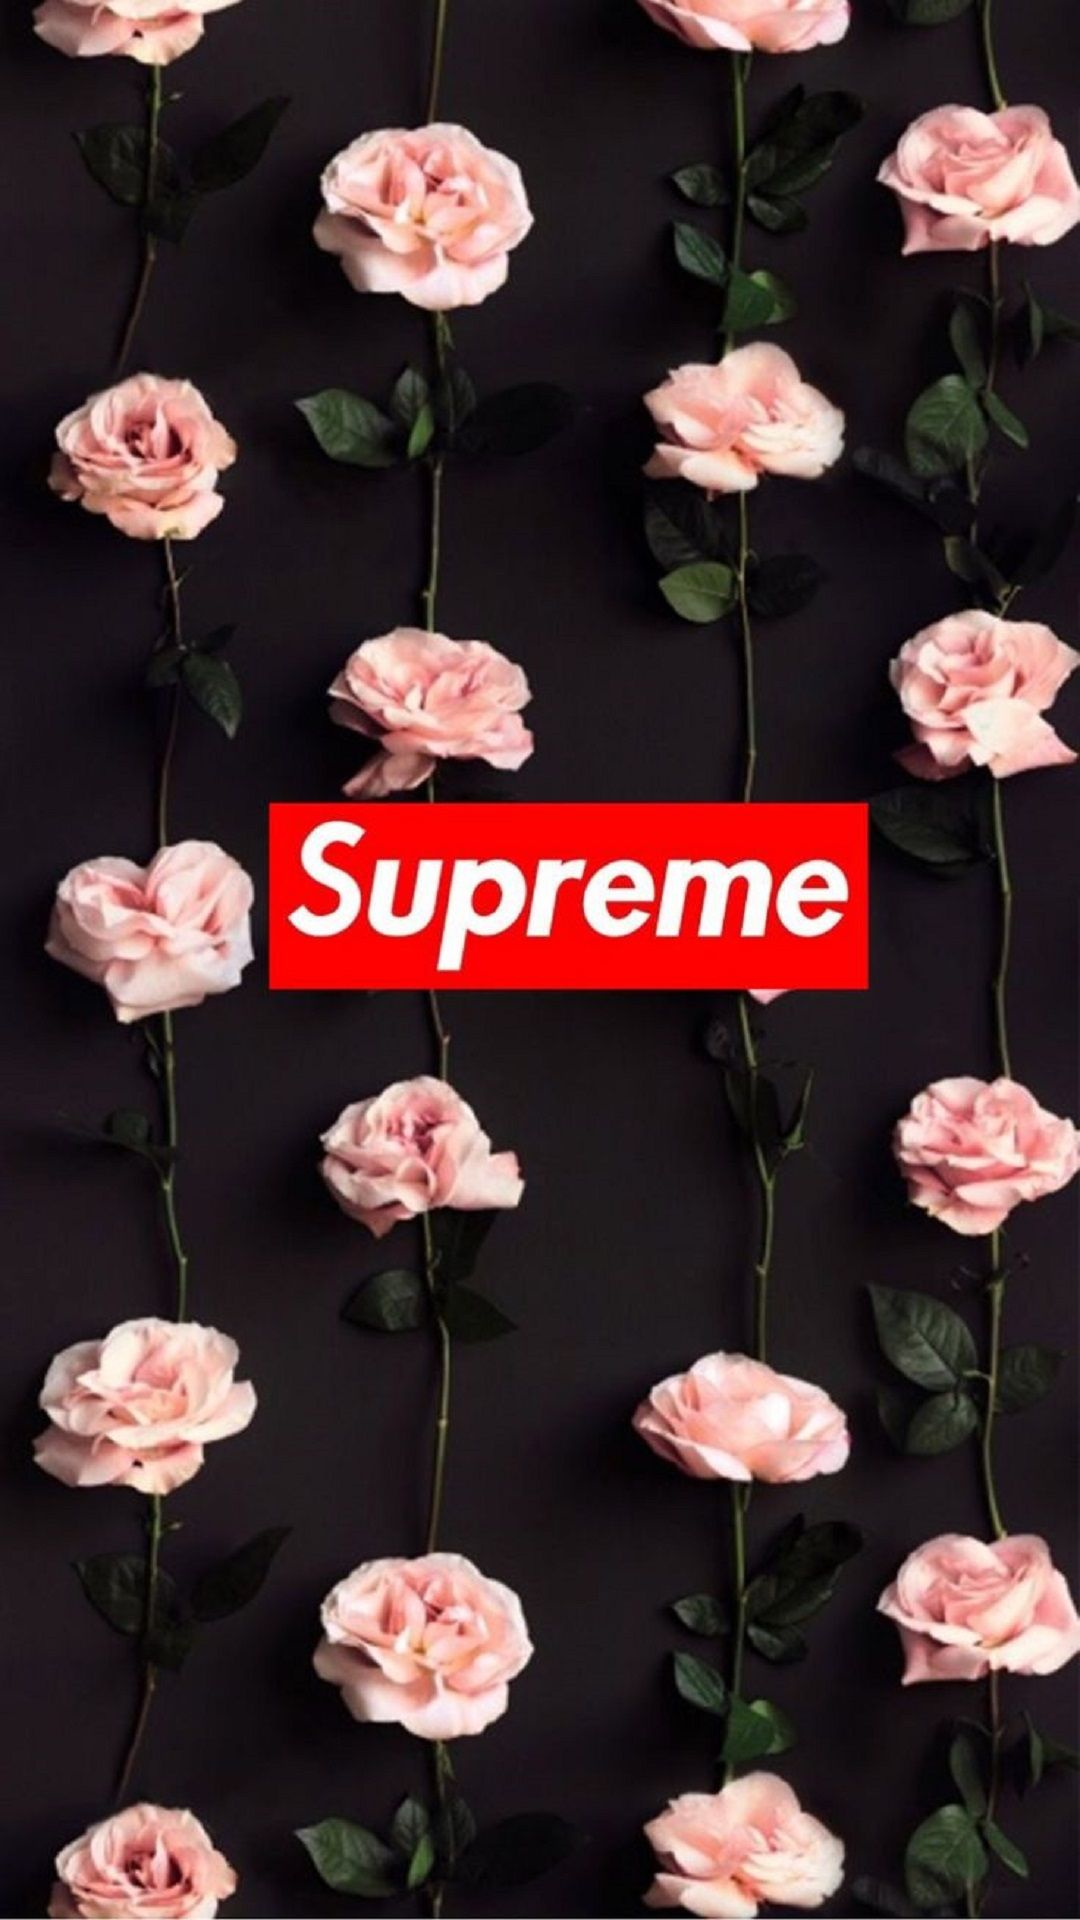 Supreme Roses Apple Iphone 7 Plus Hd Wallpapers Available For Free